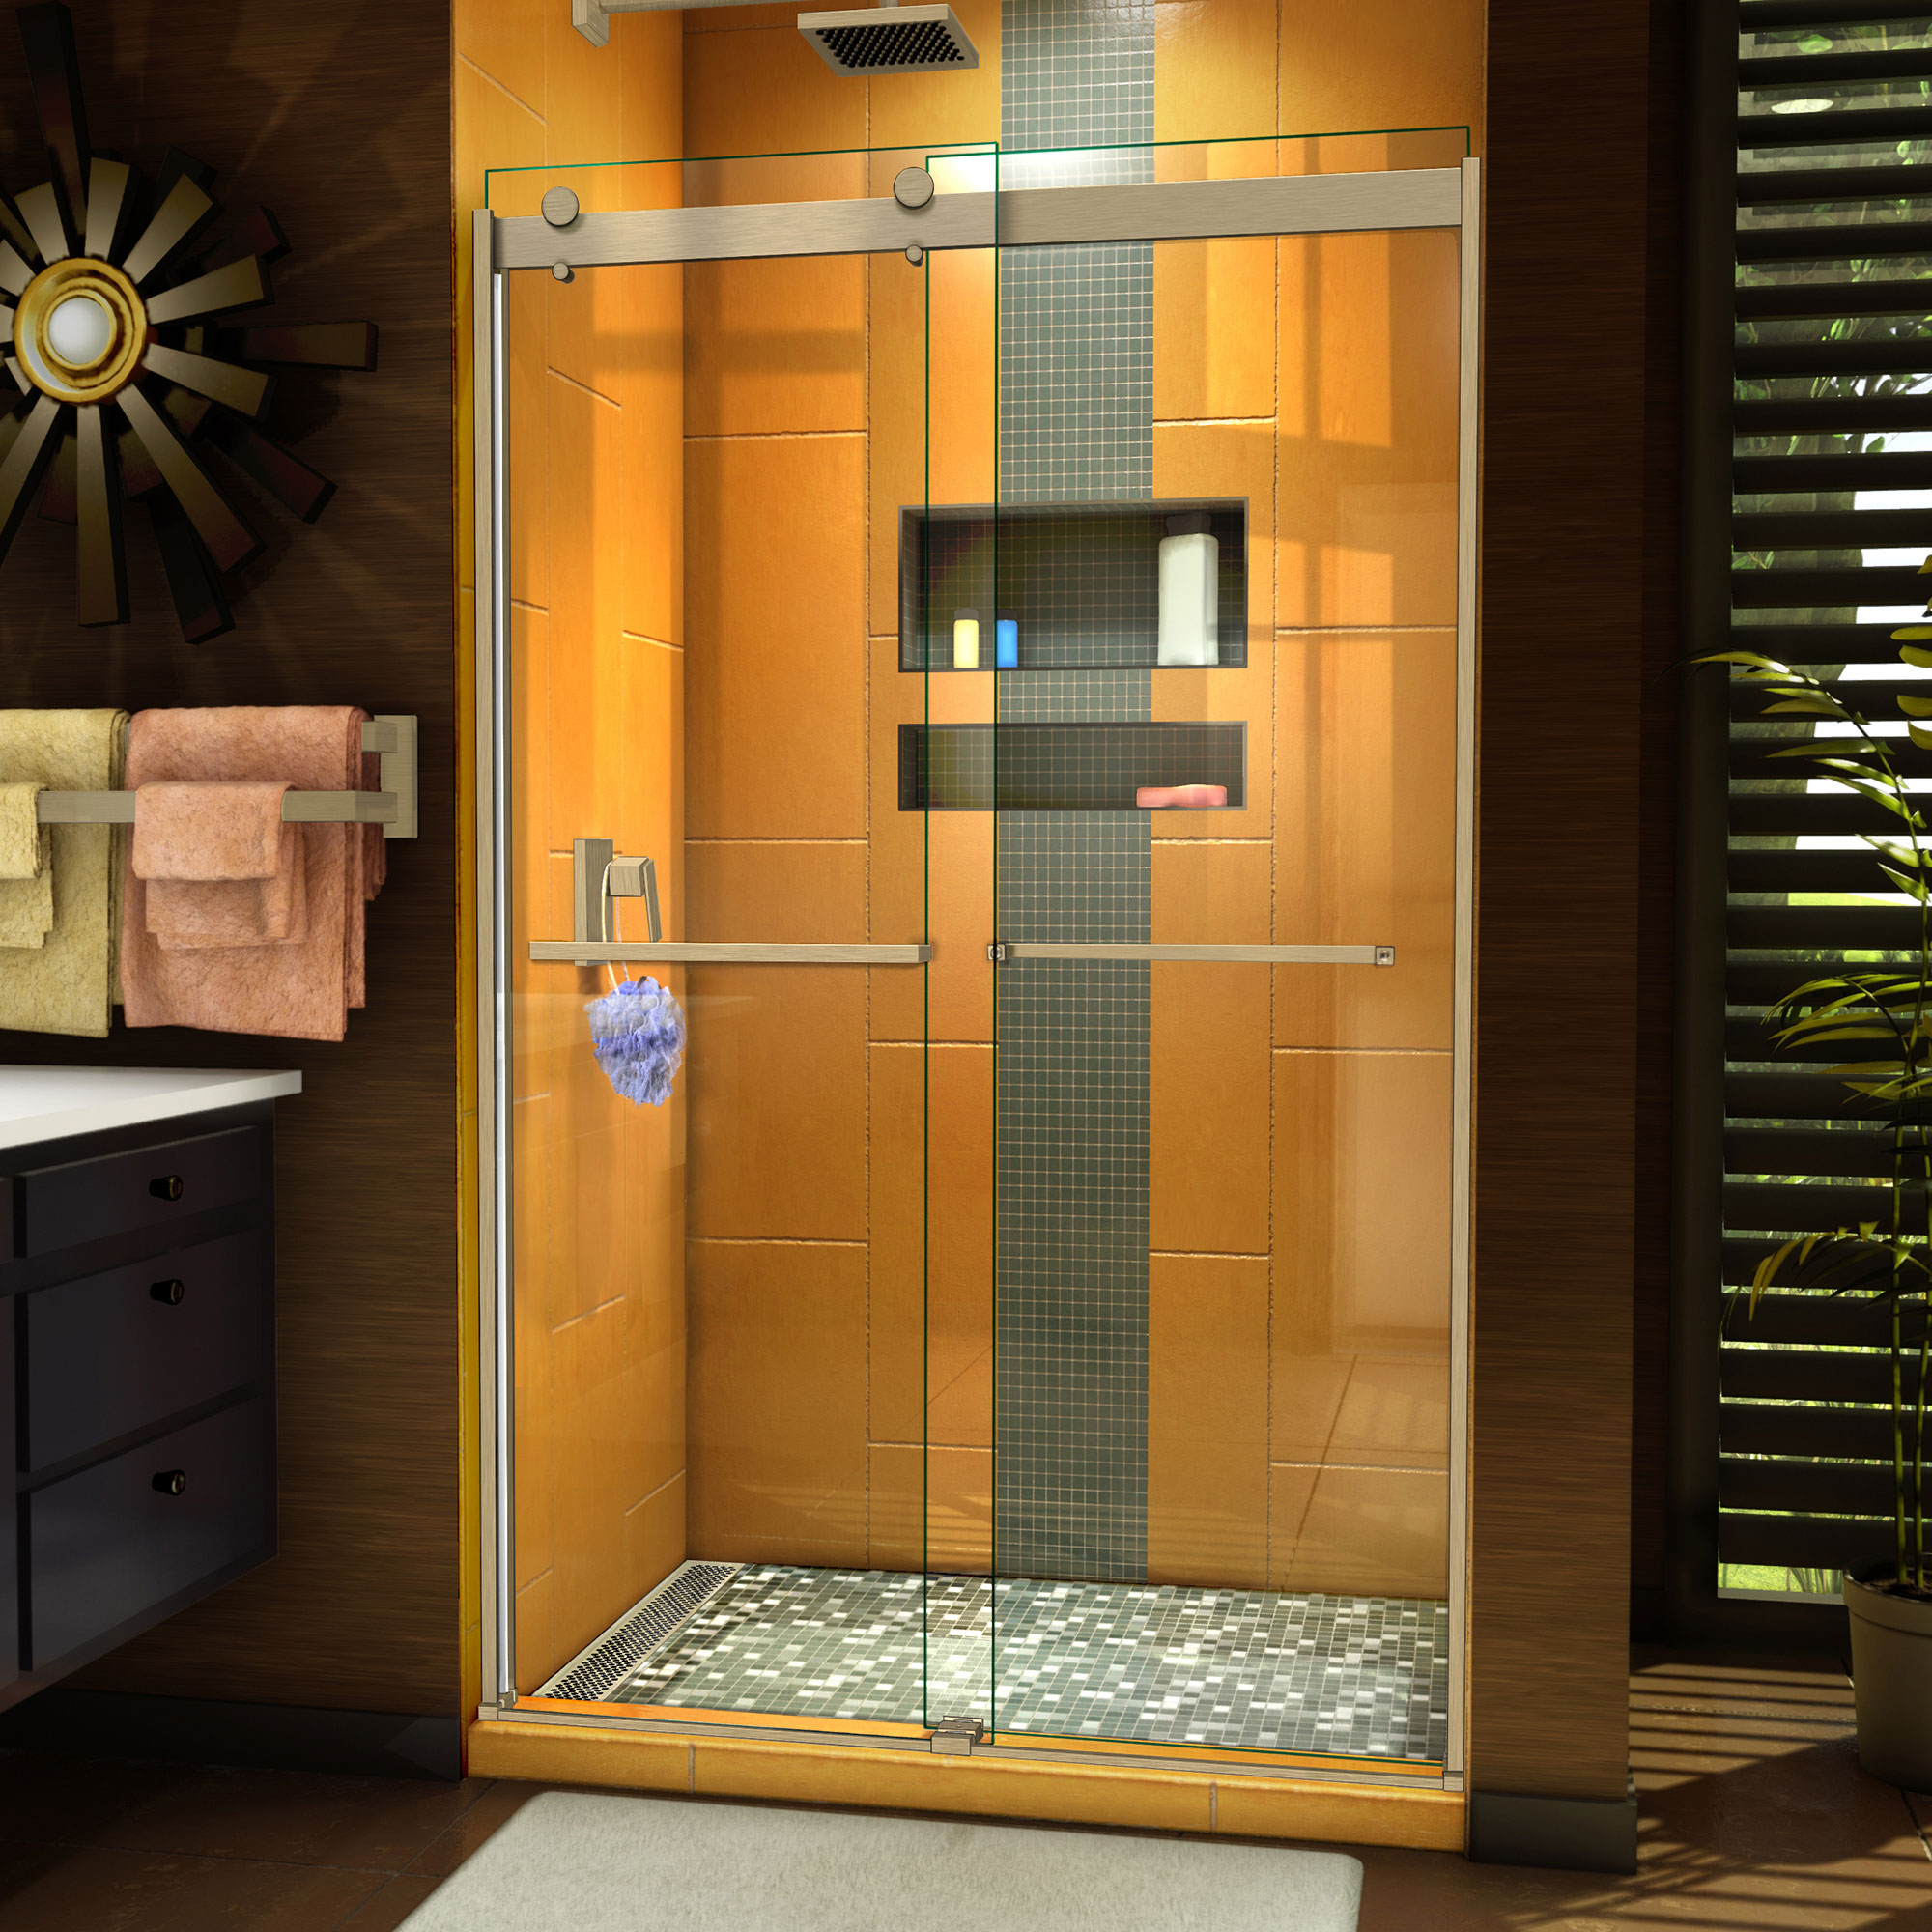 Dreamline Sapphire 44 48 In W X 76 In H Semi Frameless Bypass Shower Door In Brushed Nickel